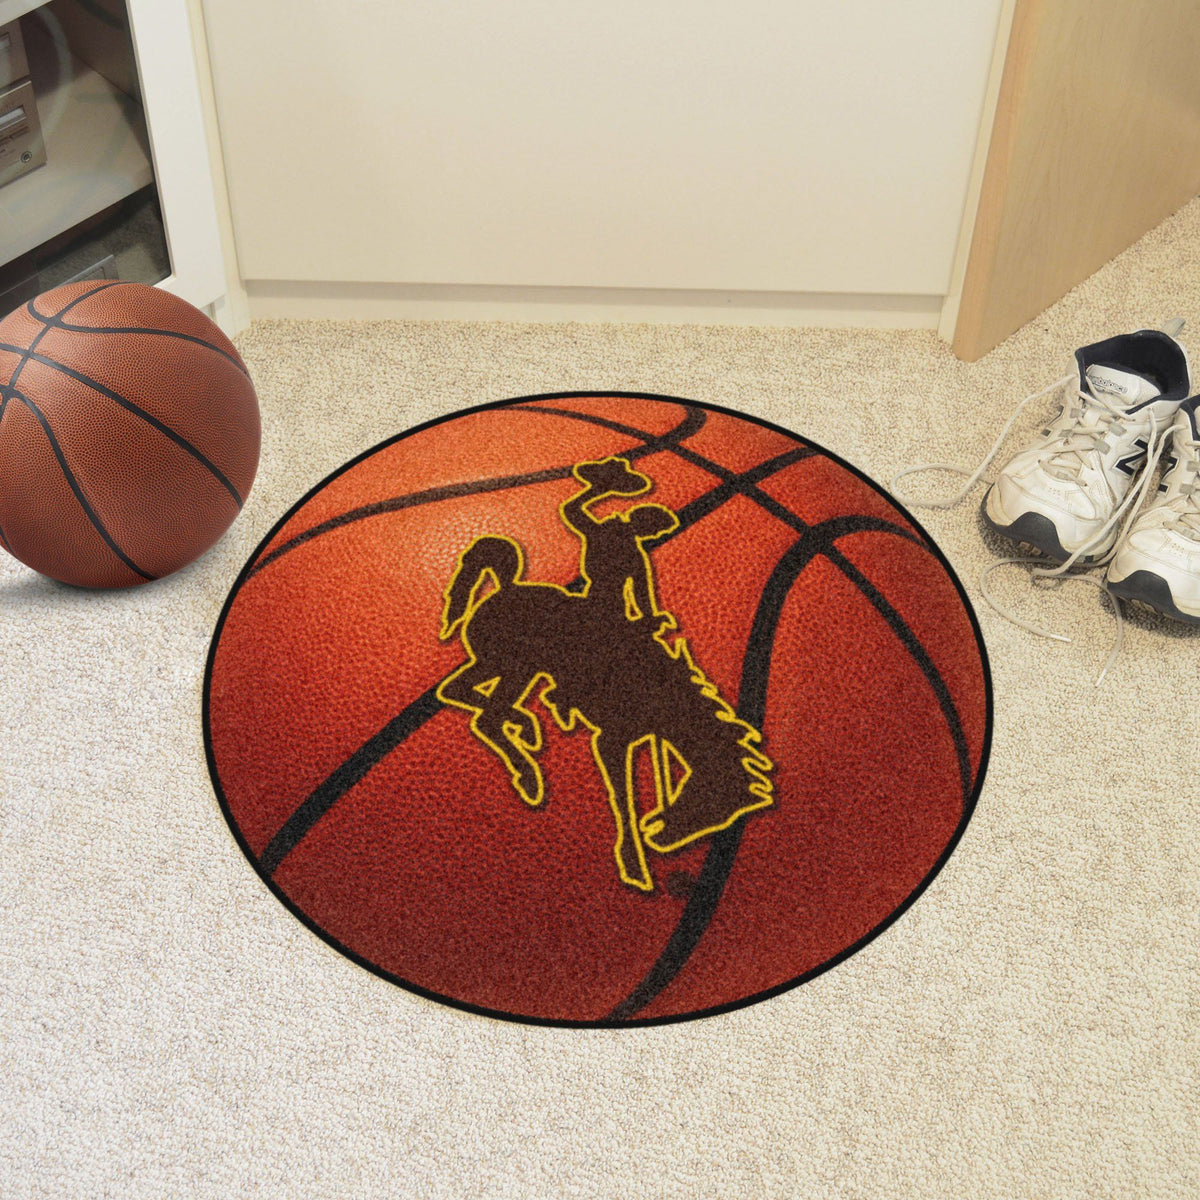 Collegiate - Basketball Mat: T - Z Collegiate Mats, Rectangular Mats, Basketball Mat, Collegiate, Home Fan Mats Wyoming